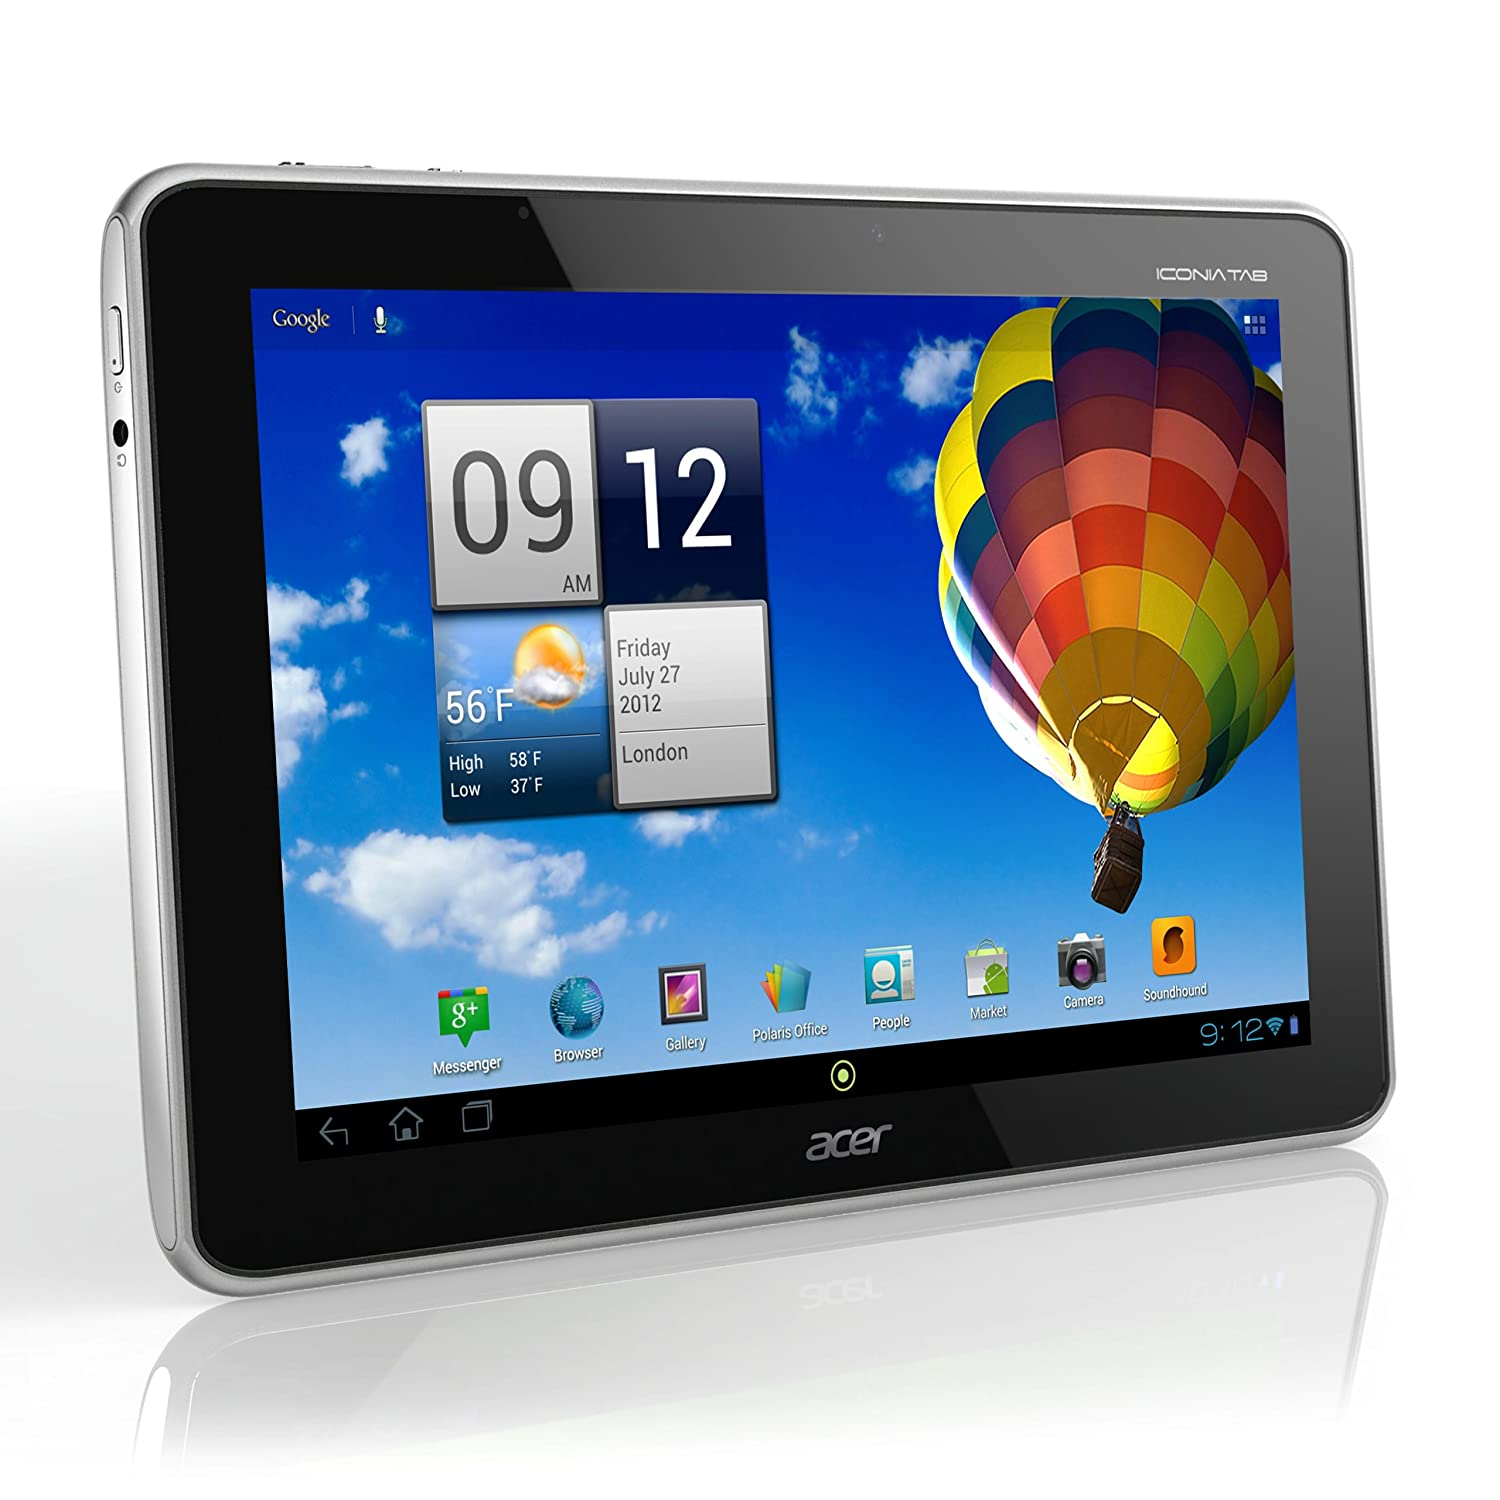 Acer Iconia A510 10.1 inch Olympic Edition Tablet (Nvidia Tegra 3 1.3GHz,  1GB